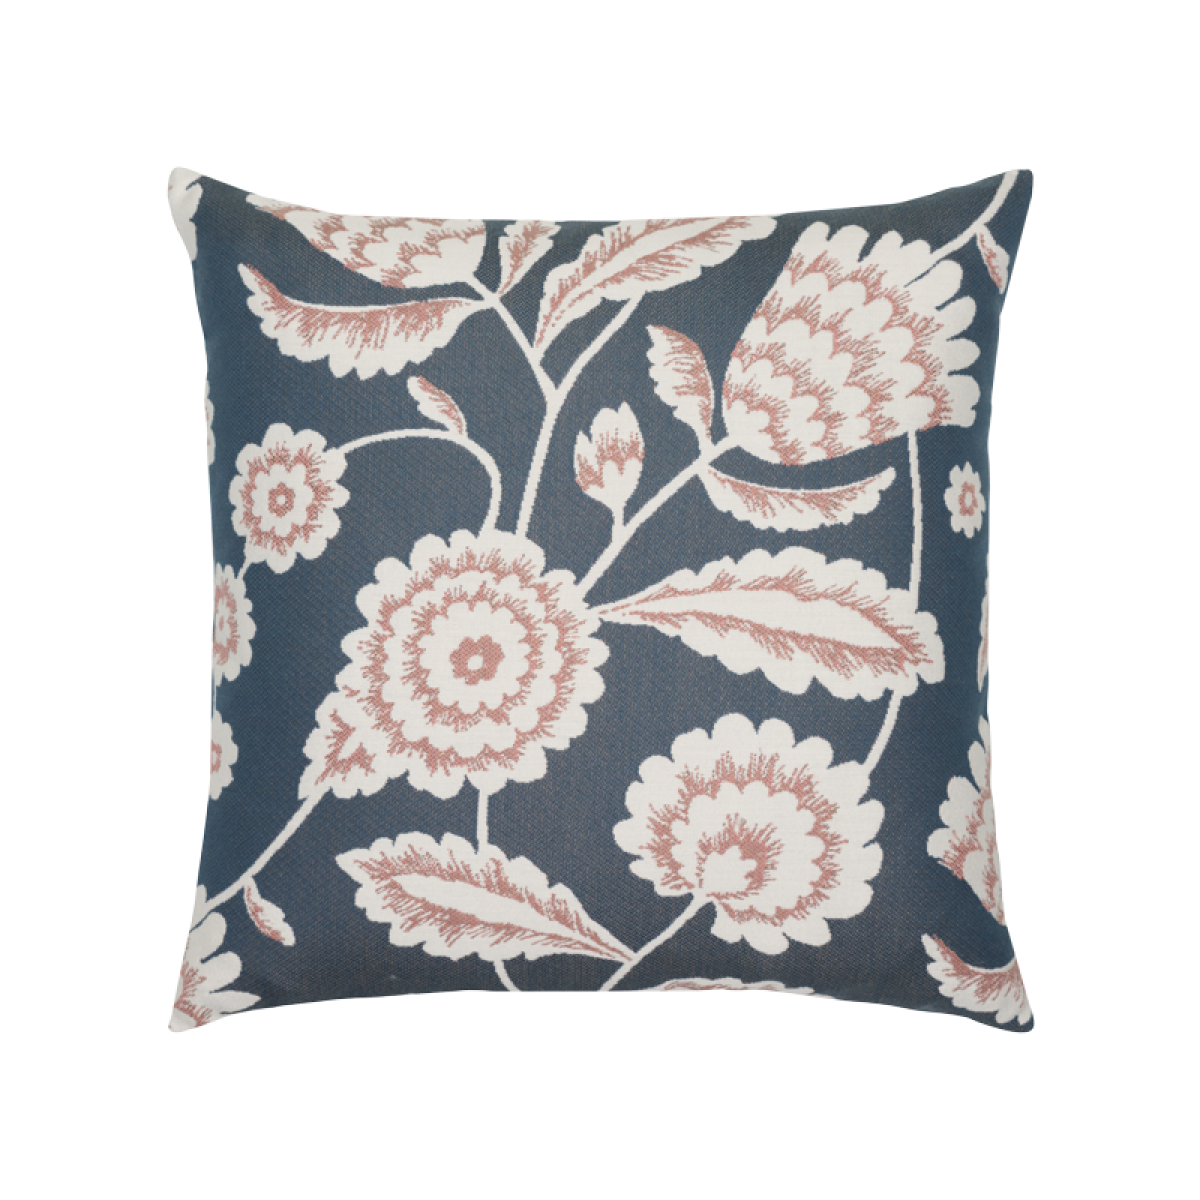 Back of Floral Vine - SALE 30% off - Limited Quantity Available